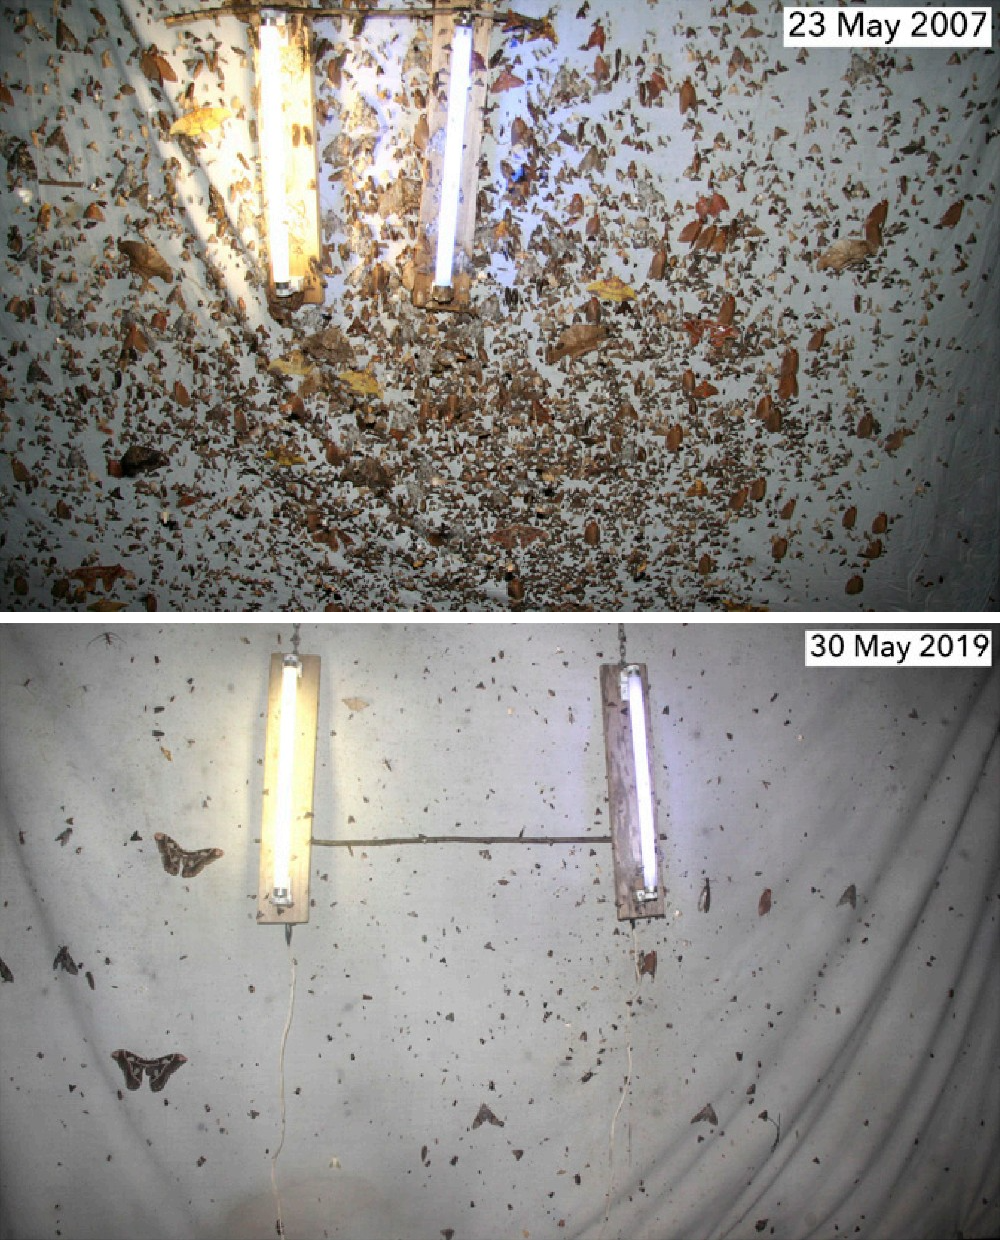 Two images, one from May 2007 and one from May 2019, show a decline in moths surveyed